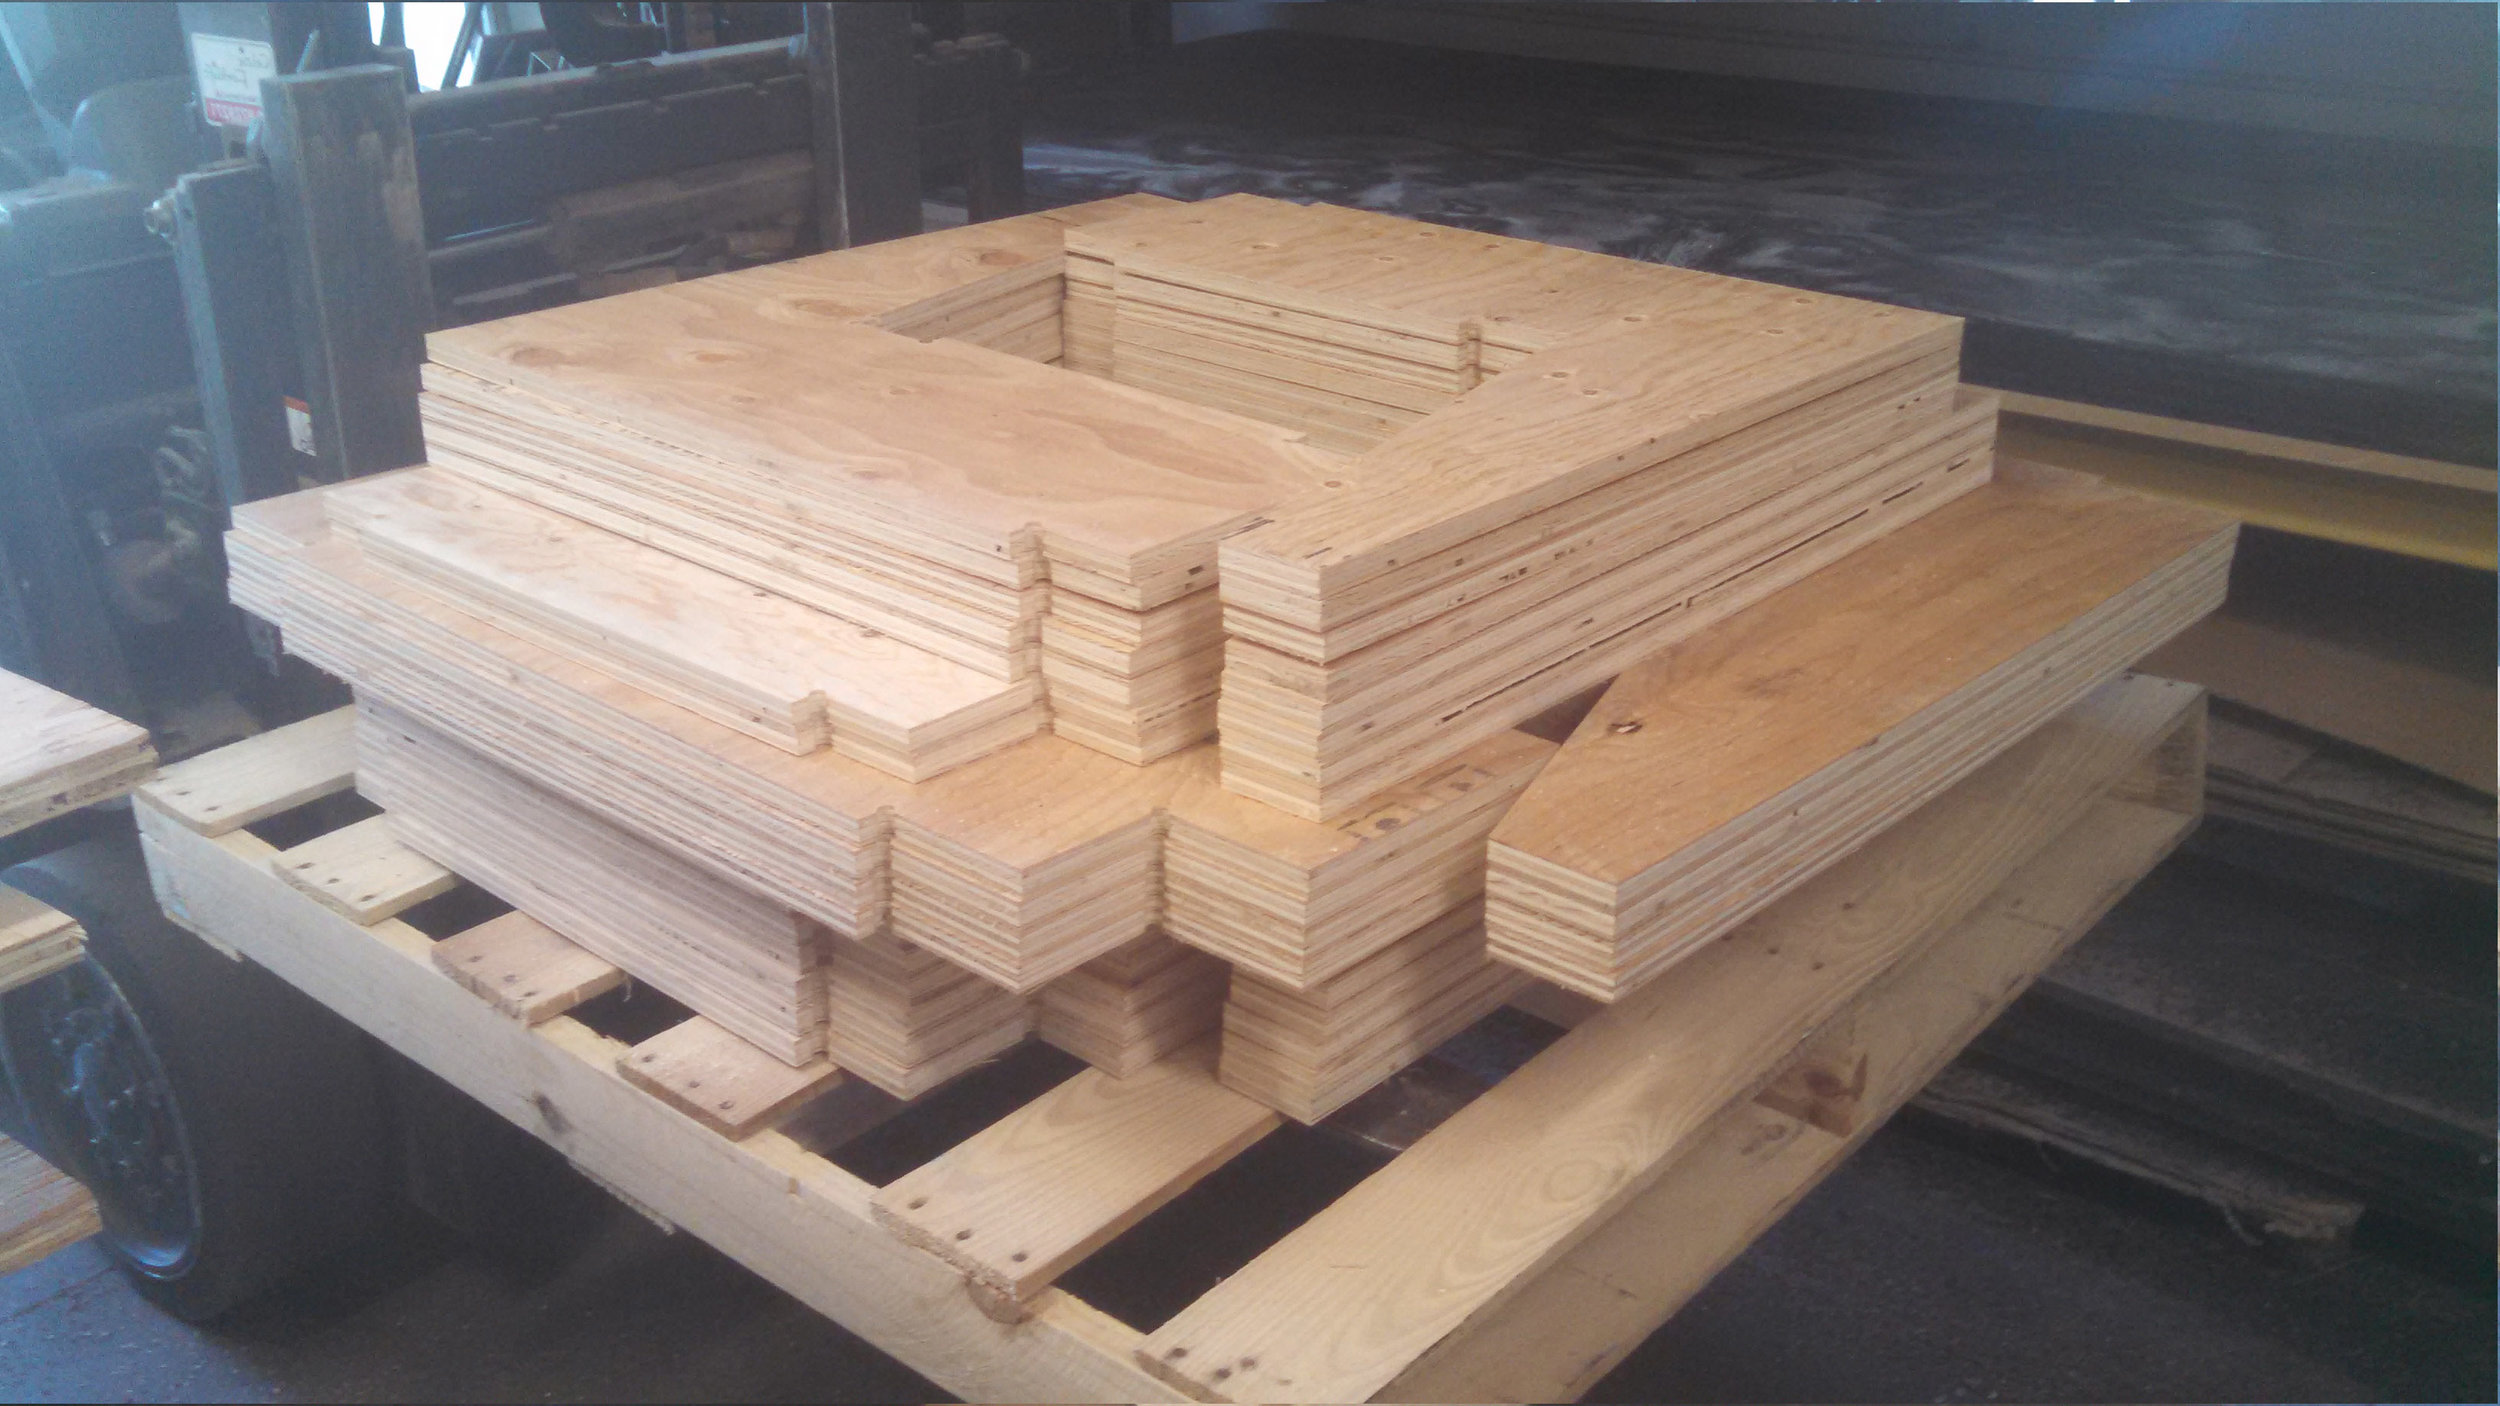 Plywood booth seating for a hospitality customer